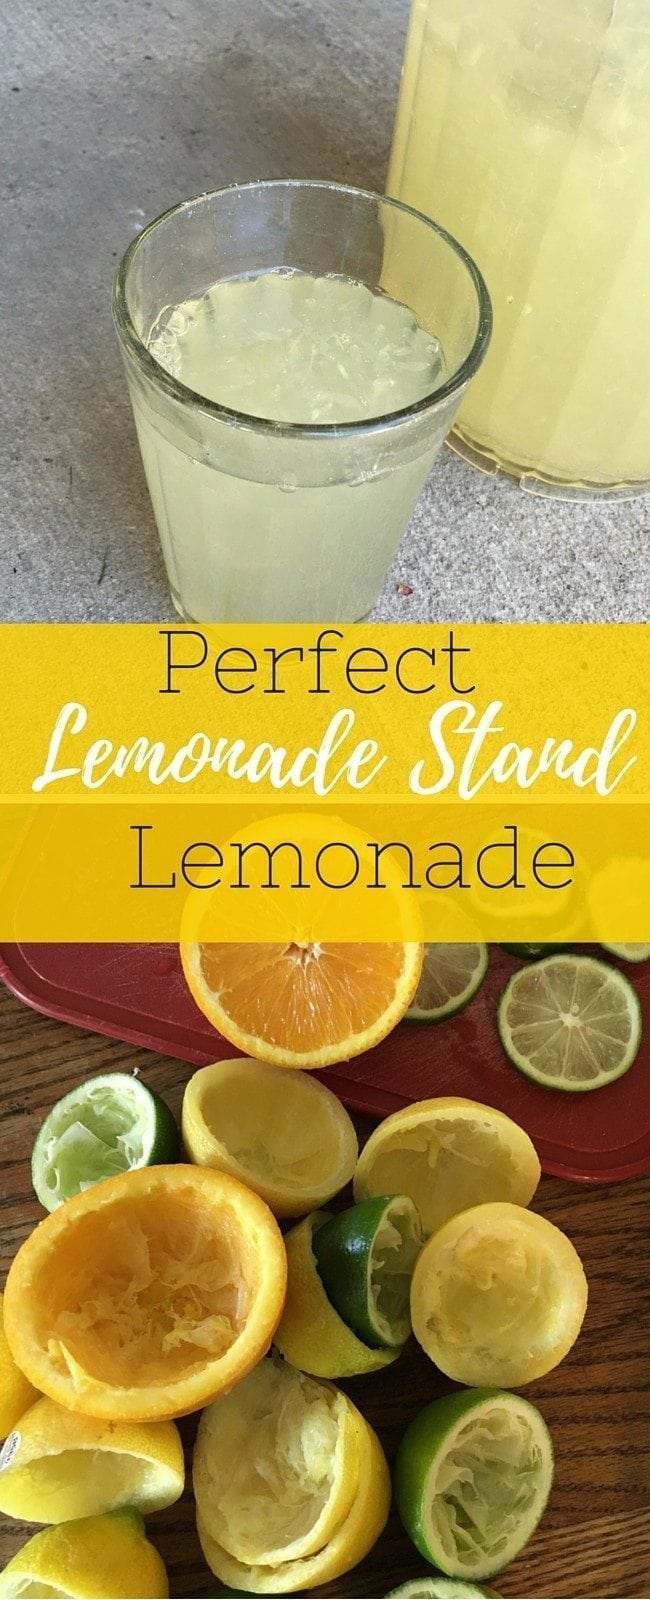 Perfect Lemonade StandLemonade